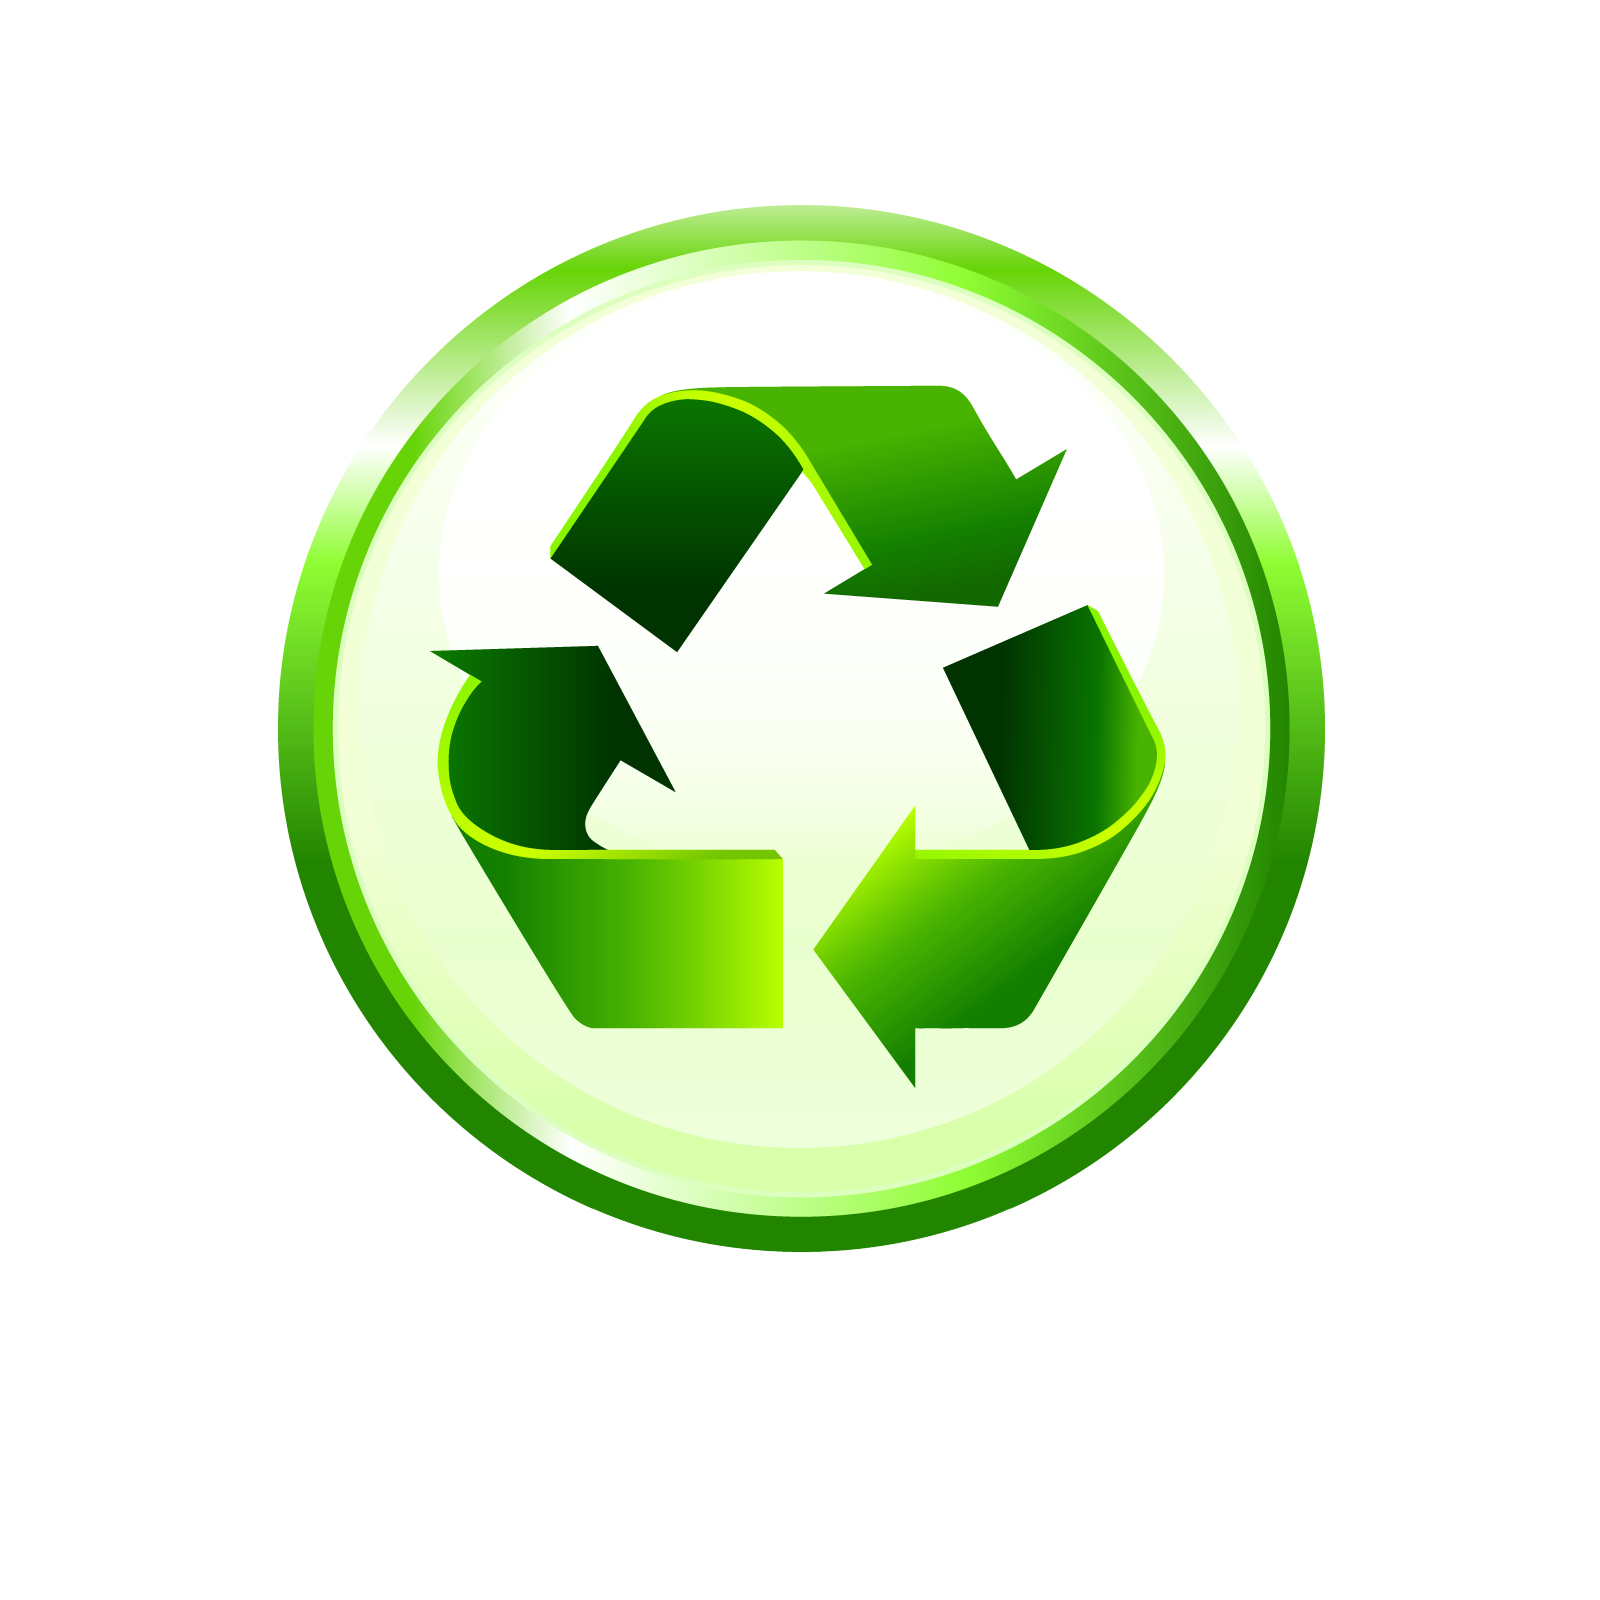 Green, Recycle Logo Png Clipart Image 3848